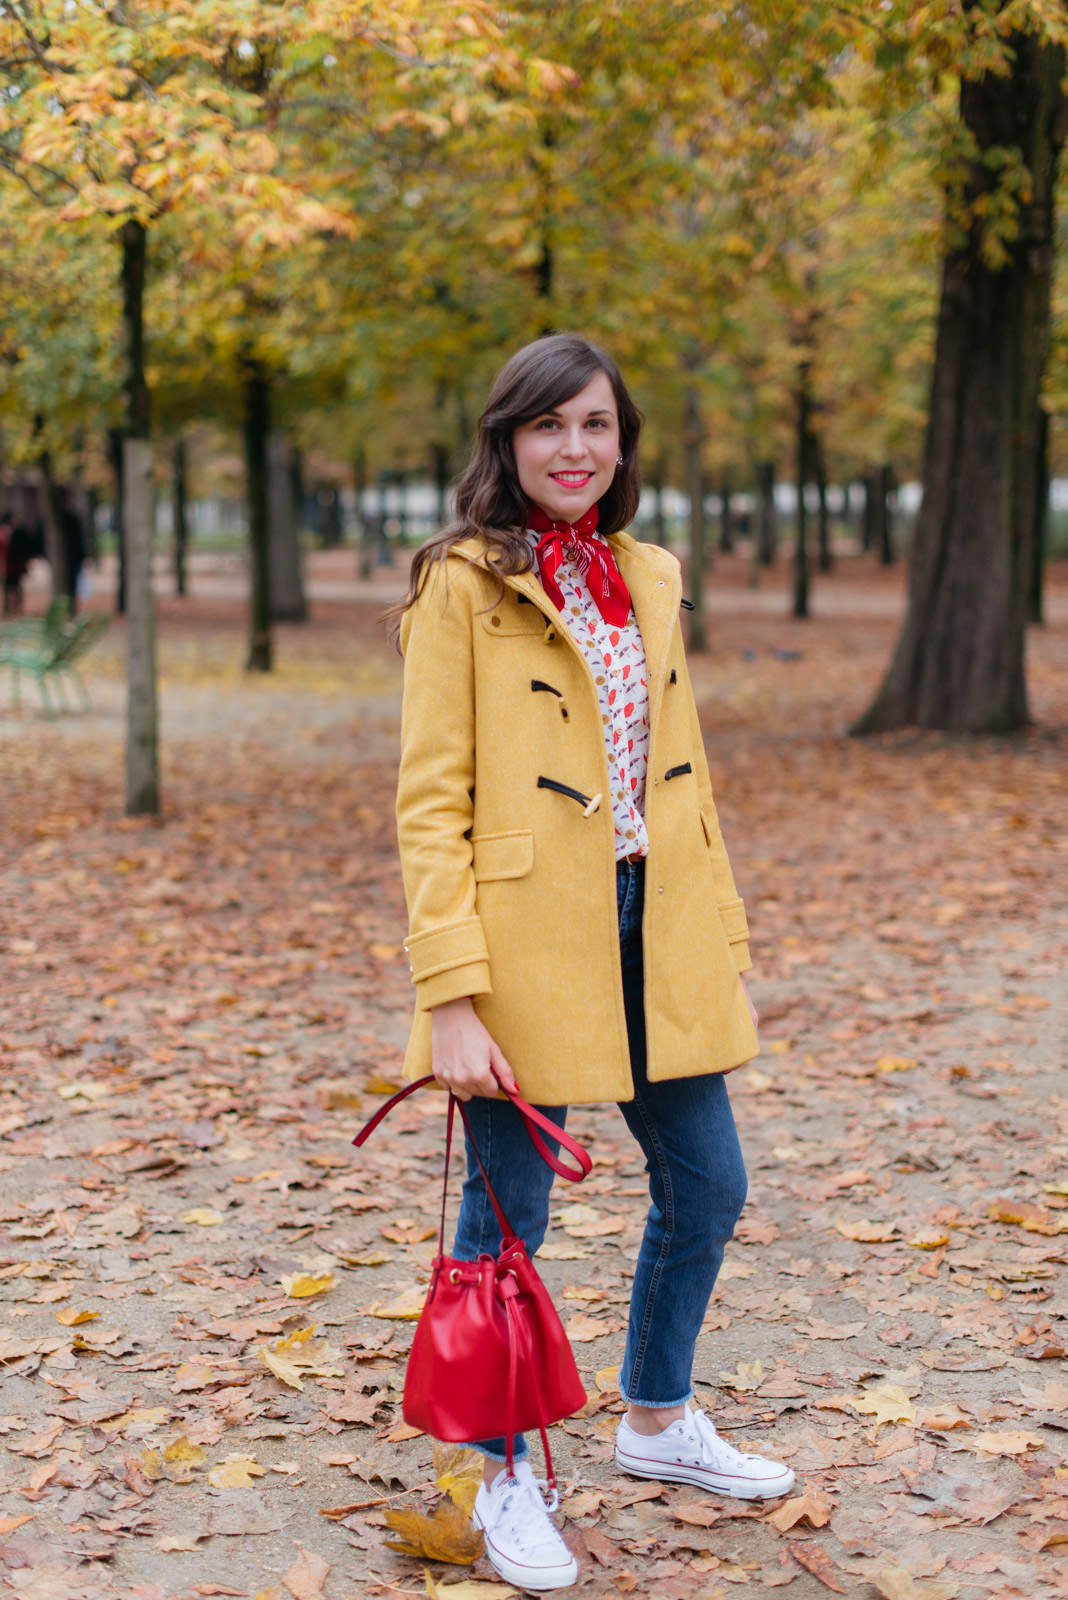 Blog-Mode-And-The-City-Lokks-Fille-de-Automne-5